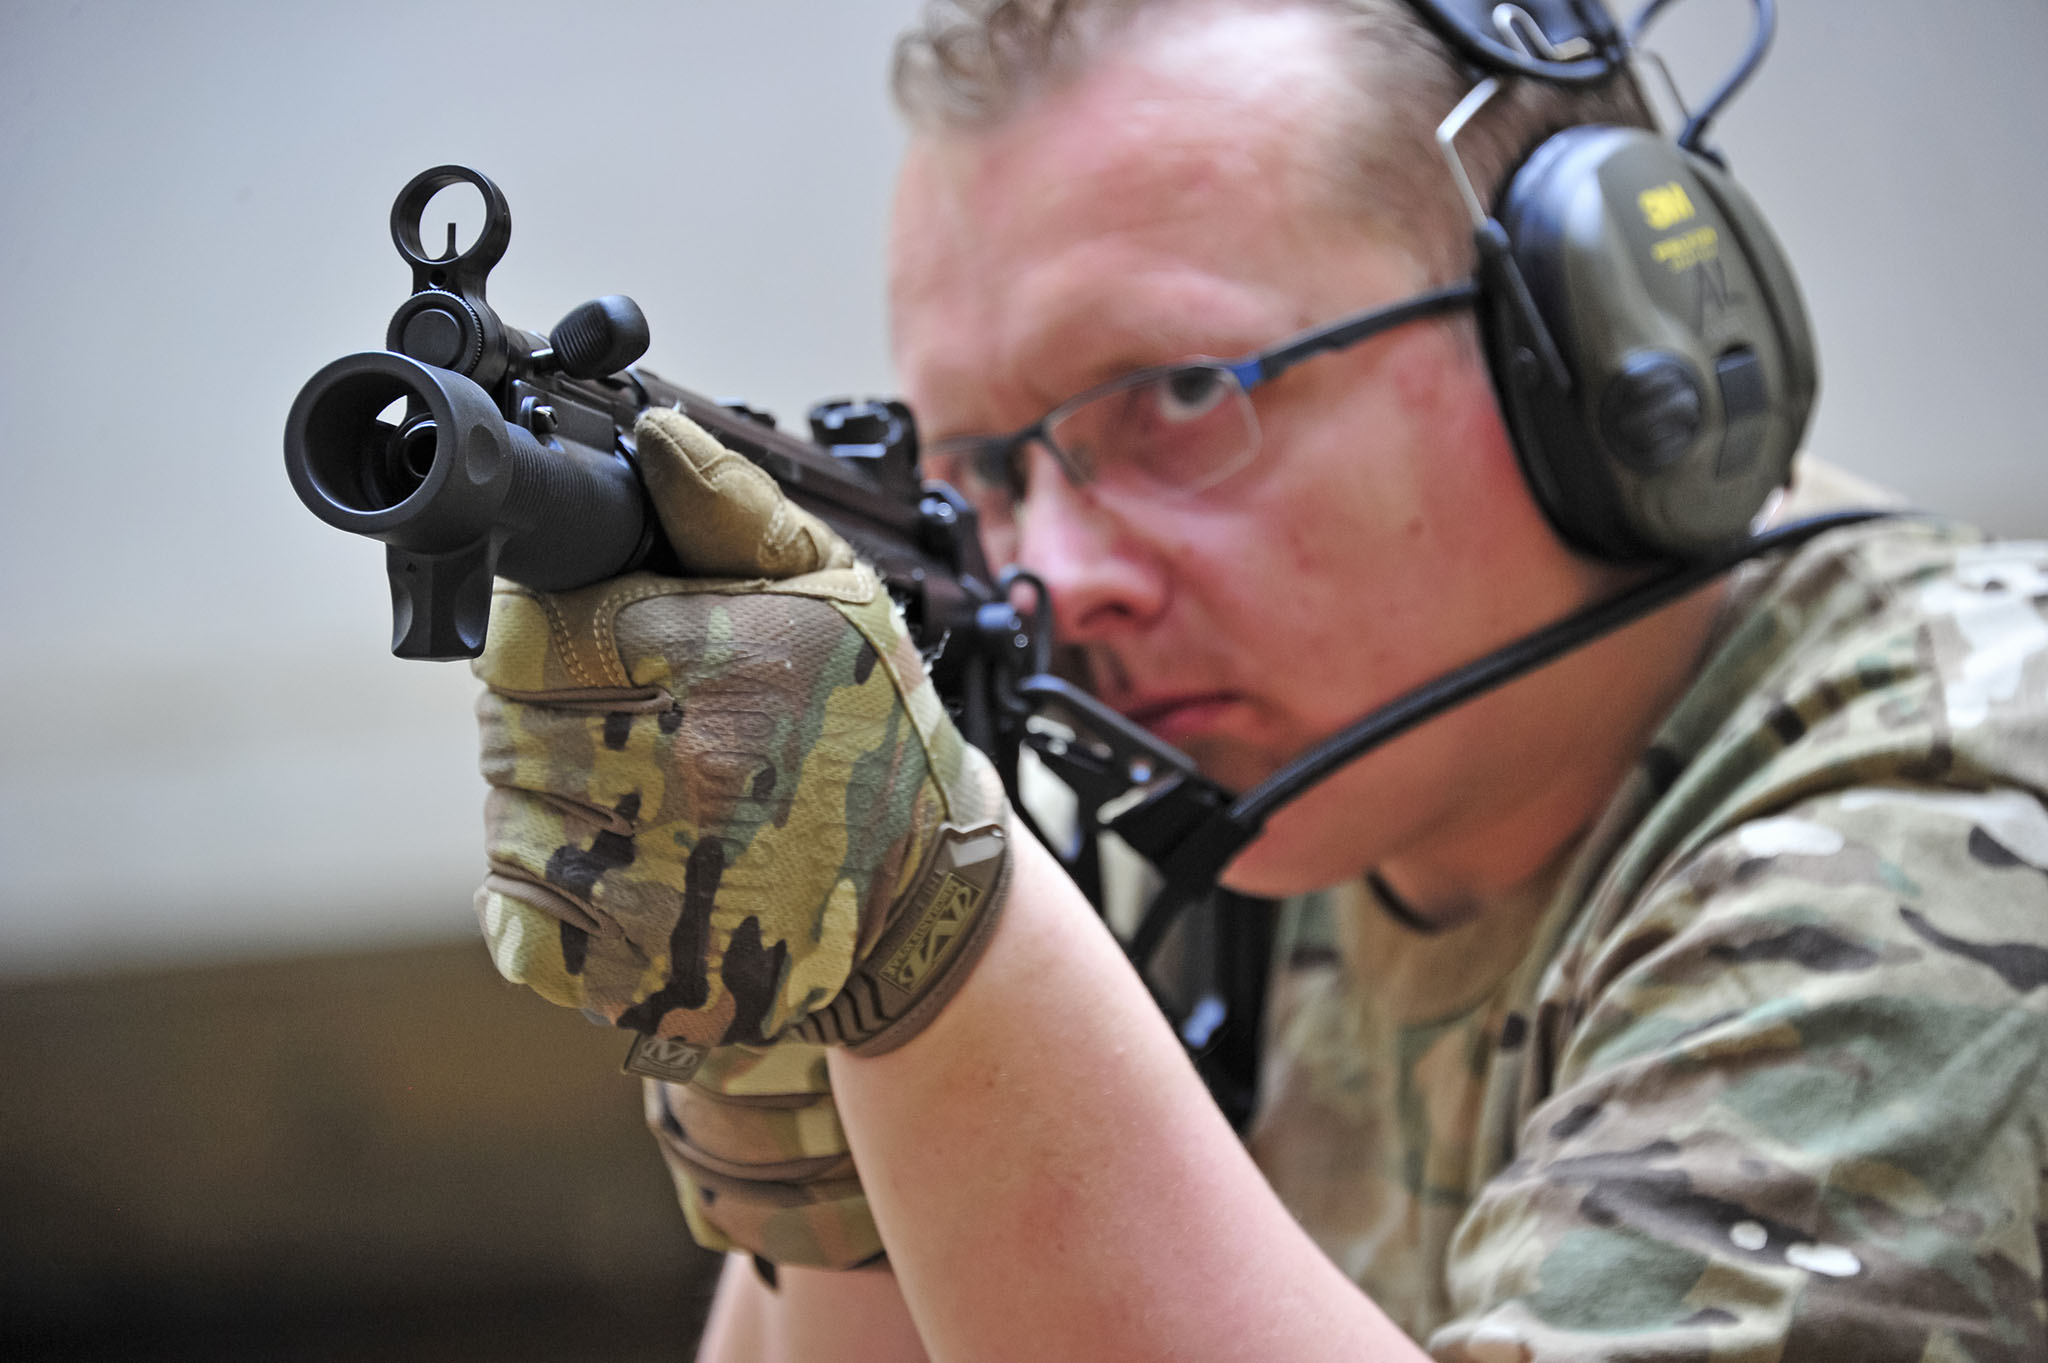 Shooter holding a stocked Heckler & Koch SP5K pistol